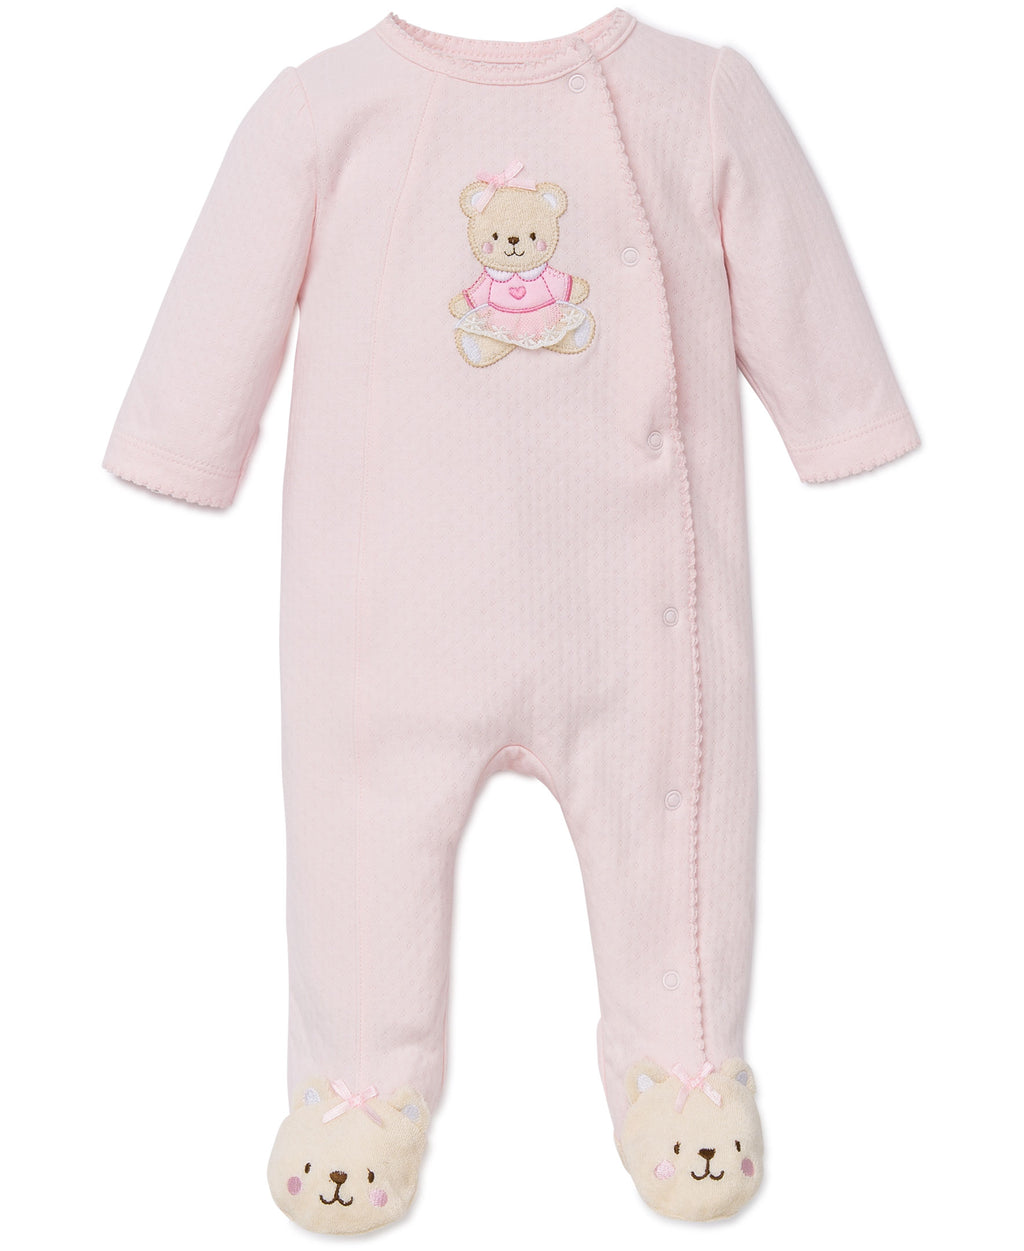 Pink Bear Footed One-Piece